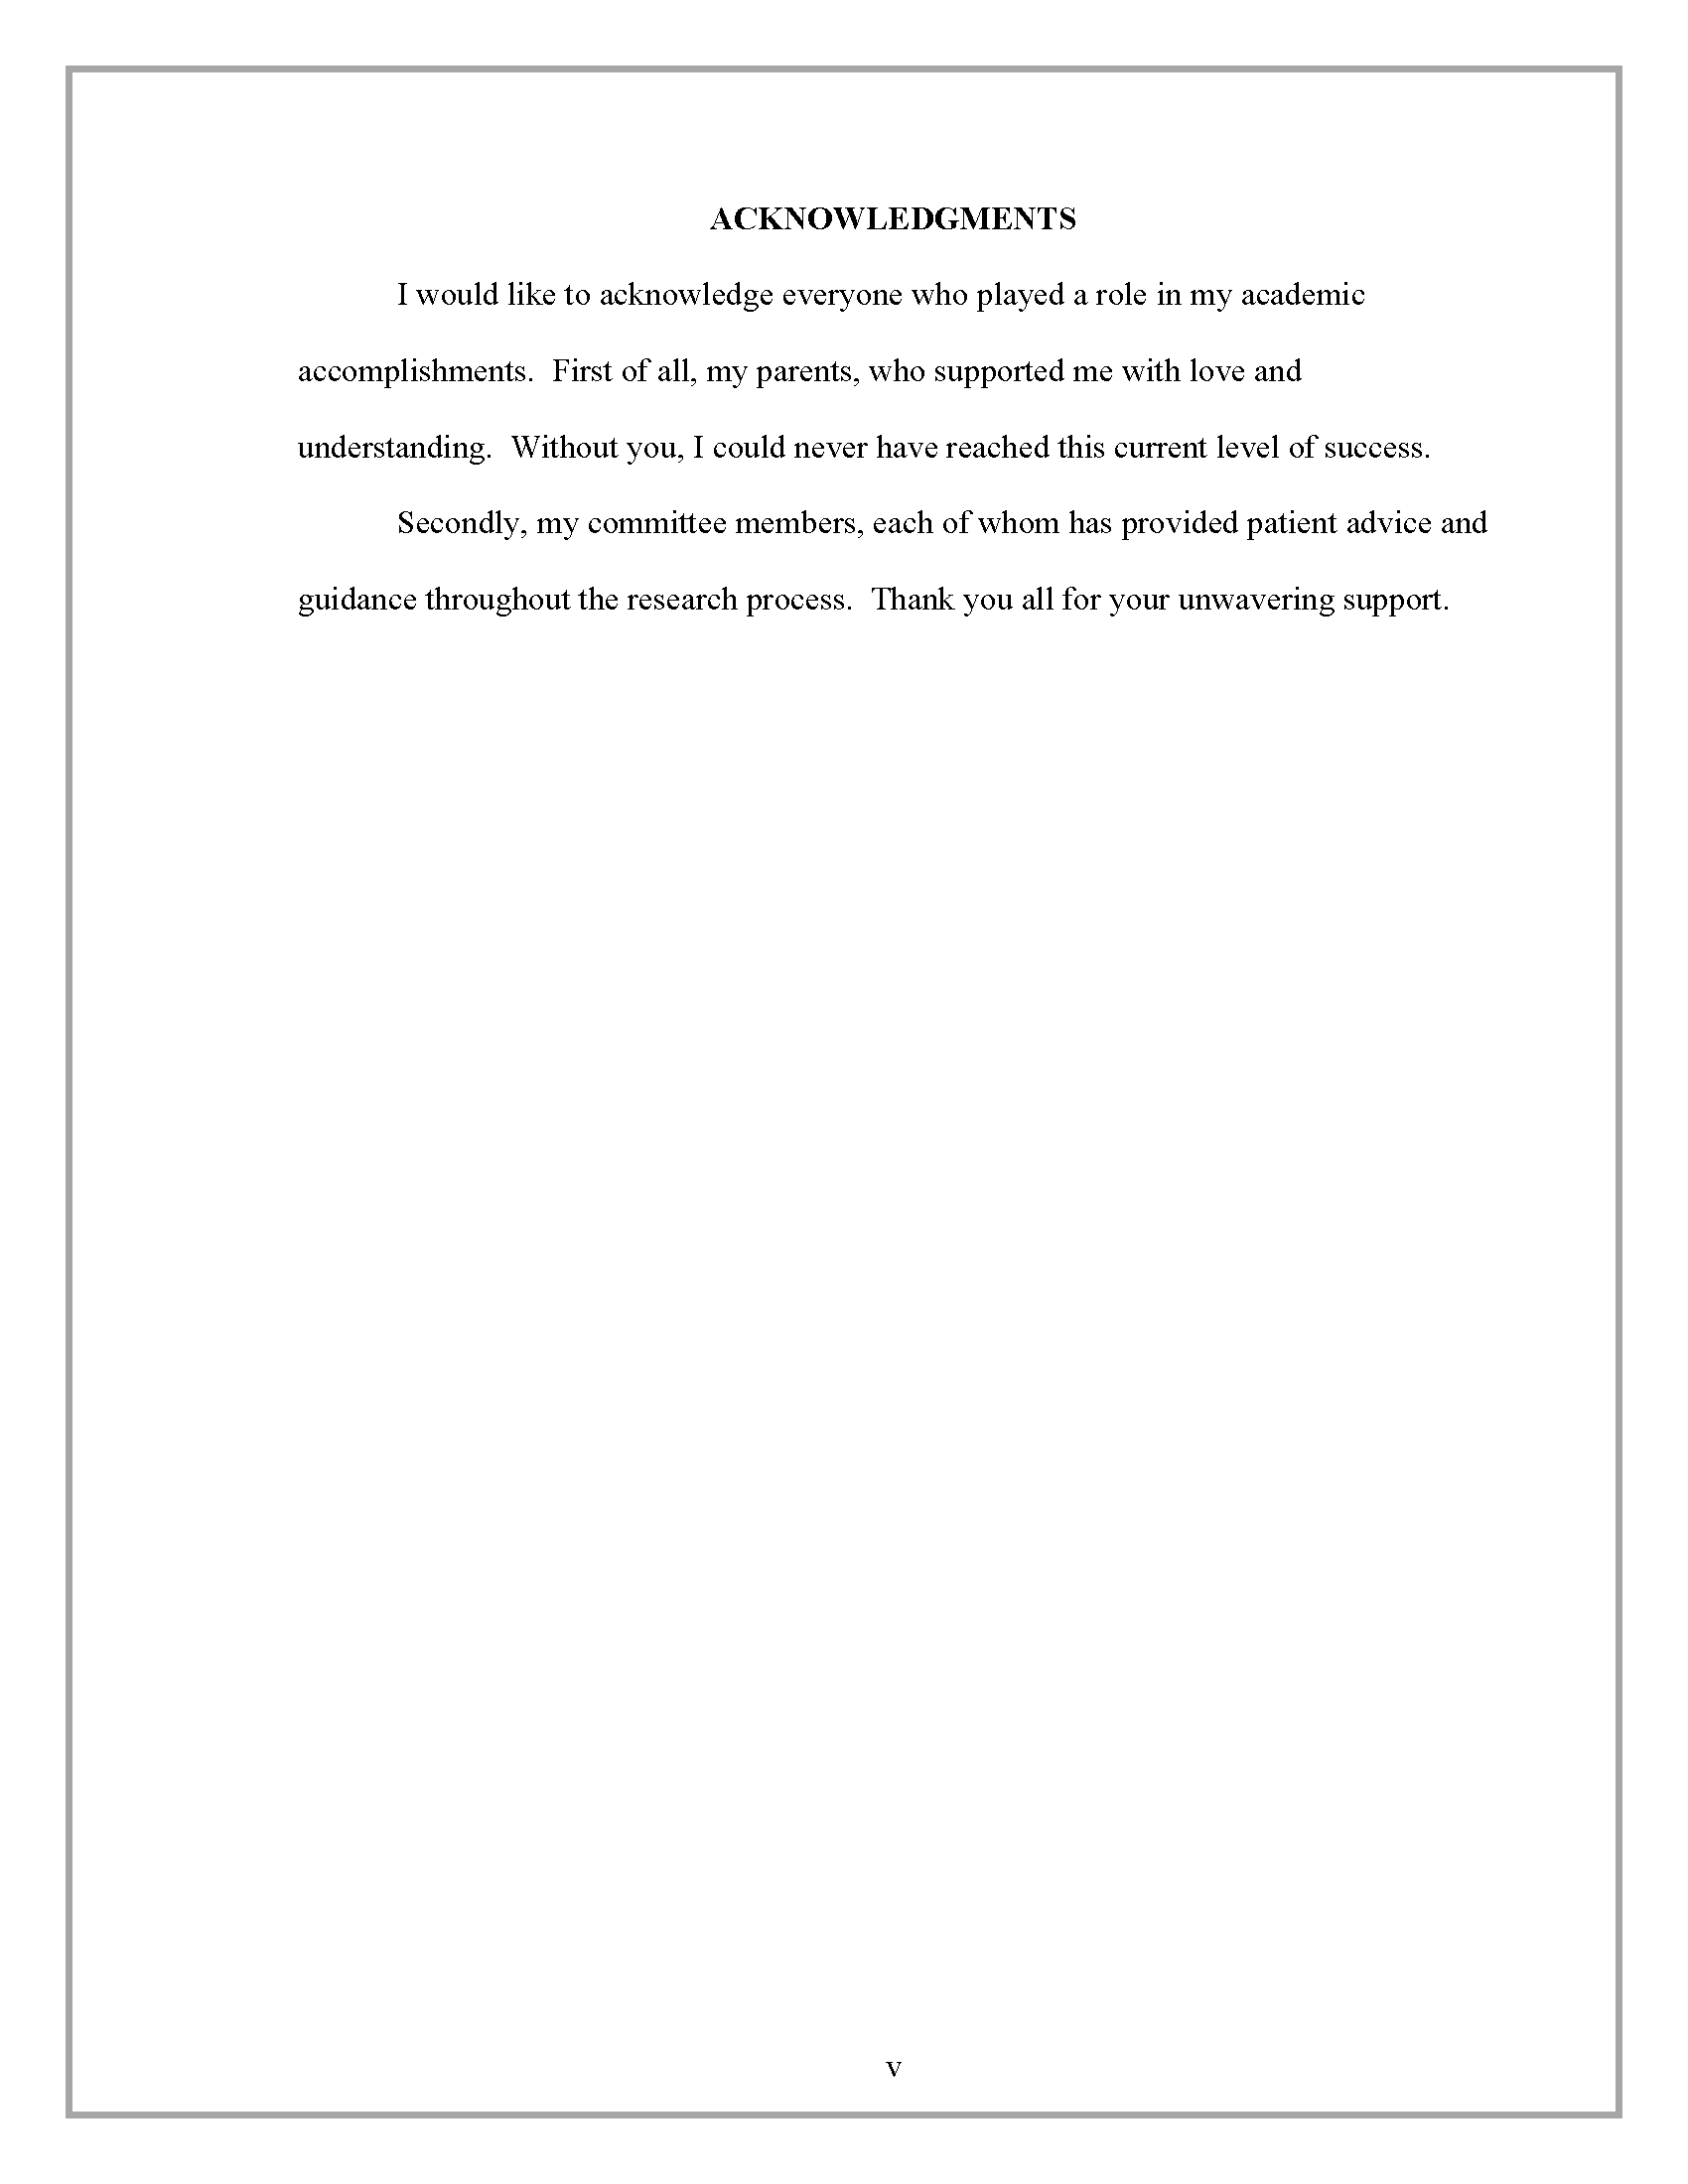 004 Acknowledgment Border Research Paper How To Write Acknowledgement In Rare Examples Full